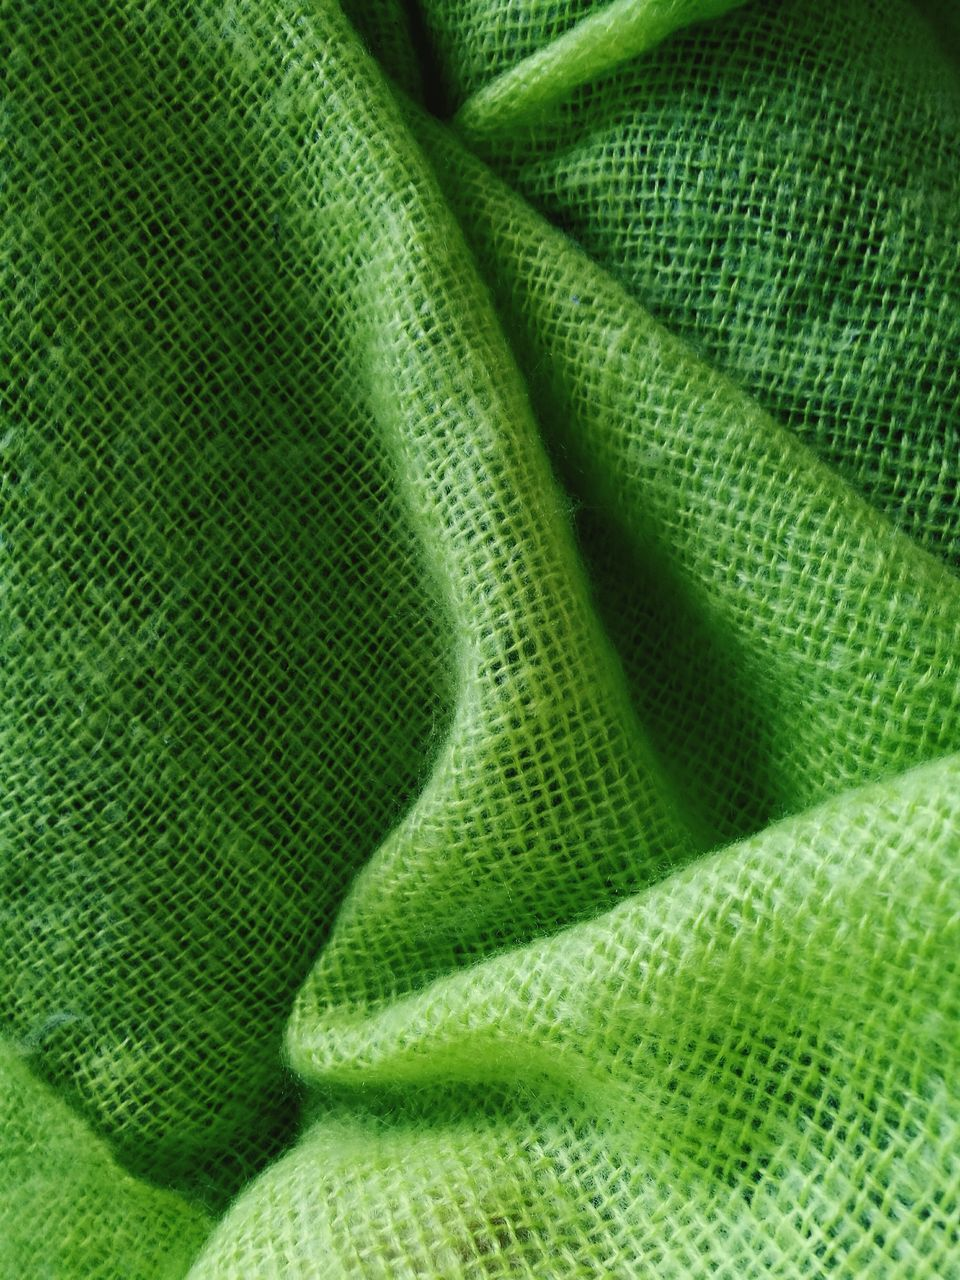 green color, full frame, backgrounds, no people, close-up, textured, pattern, indoors, day, nature, freshness